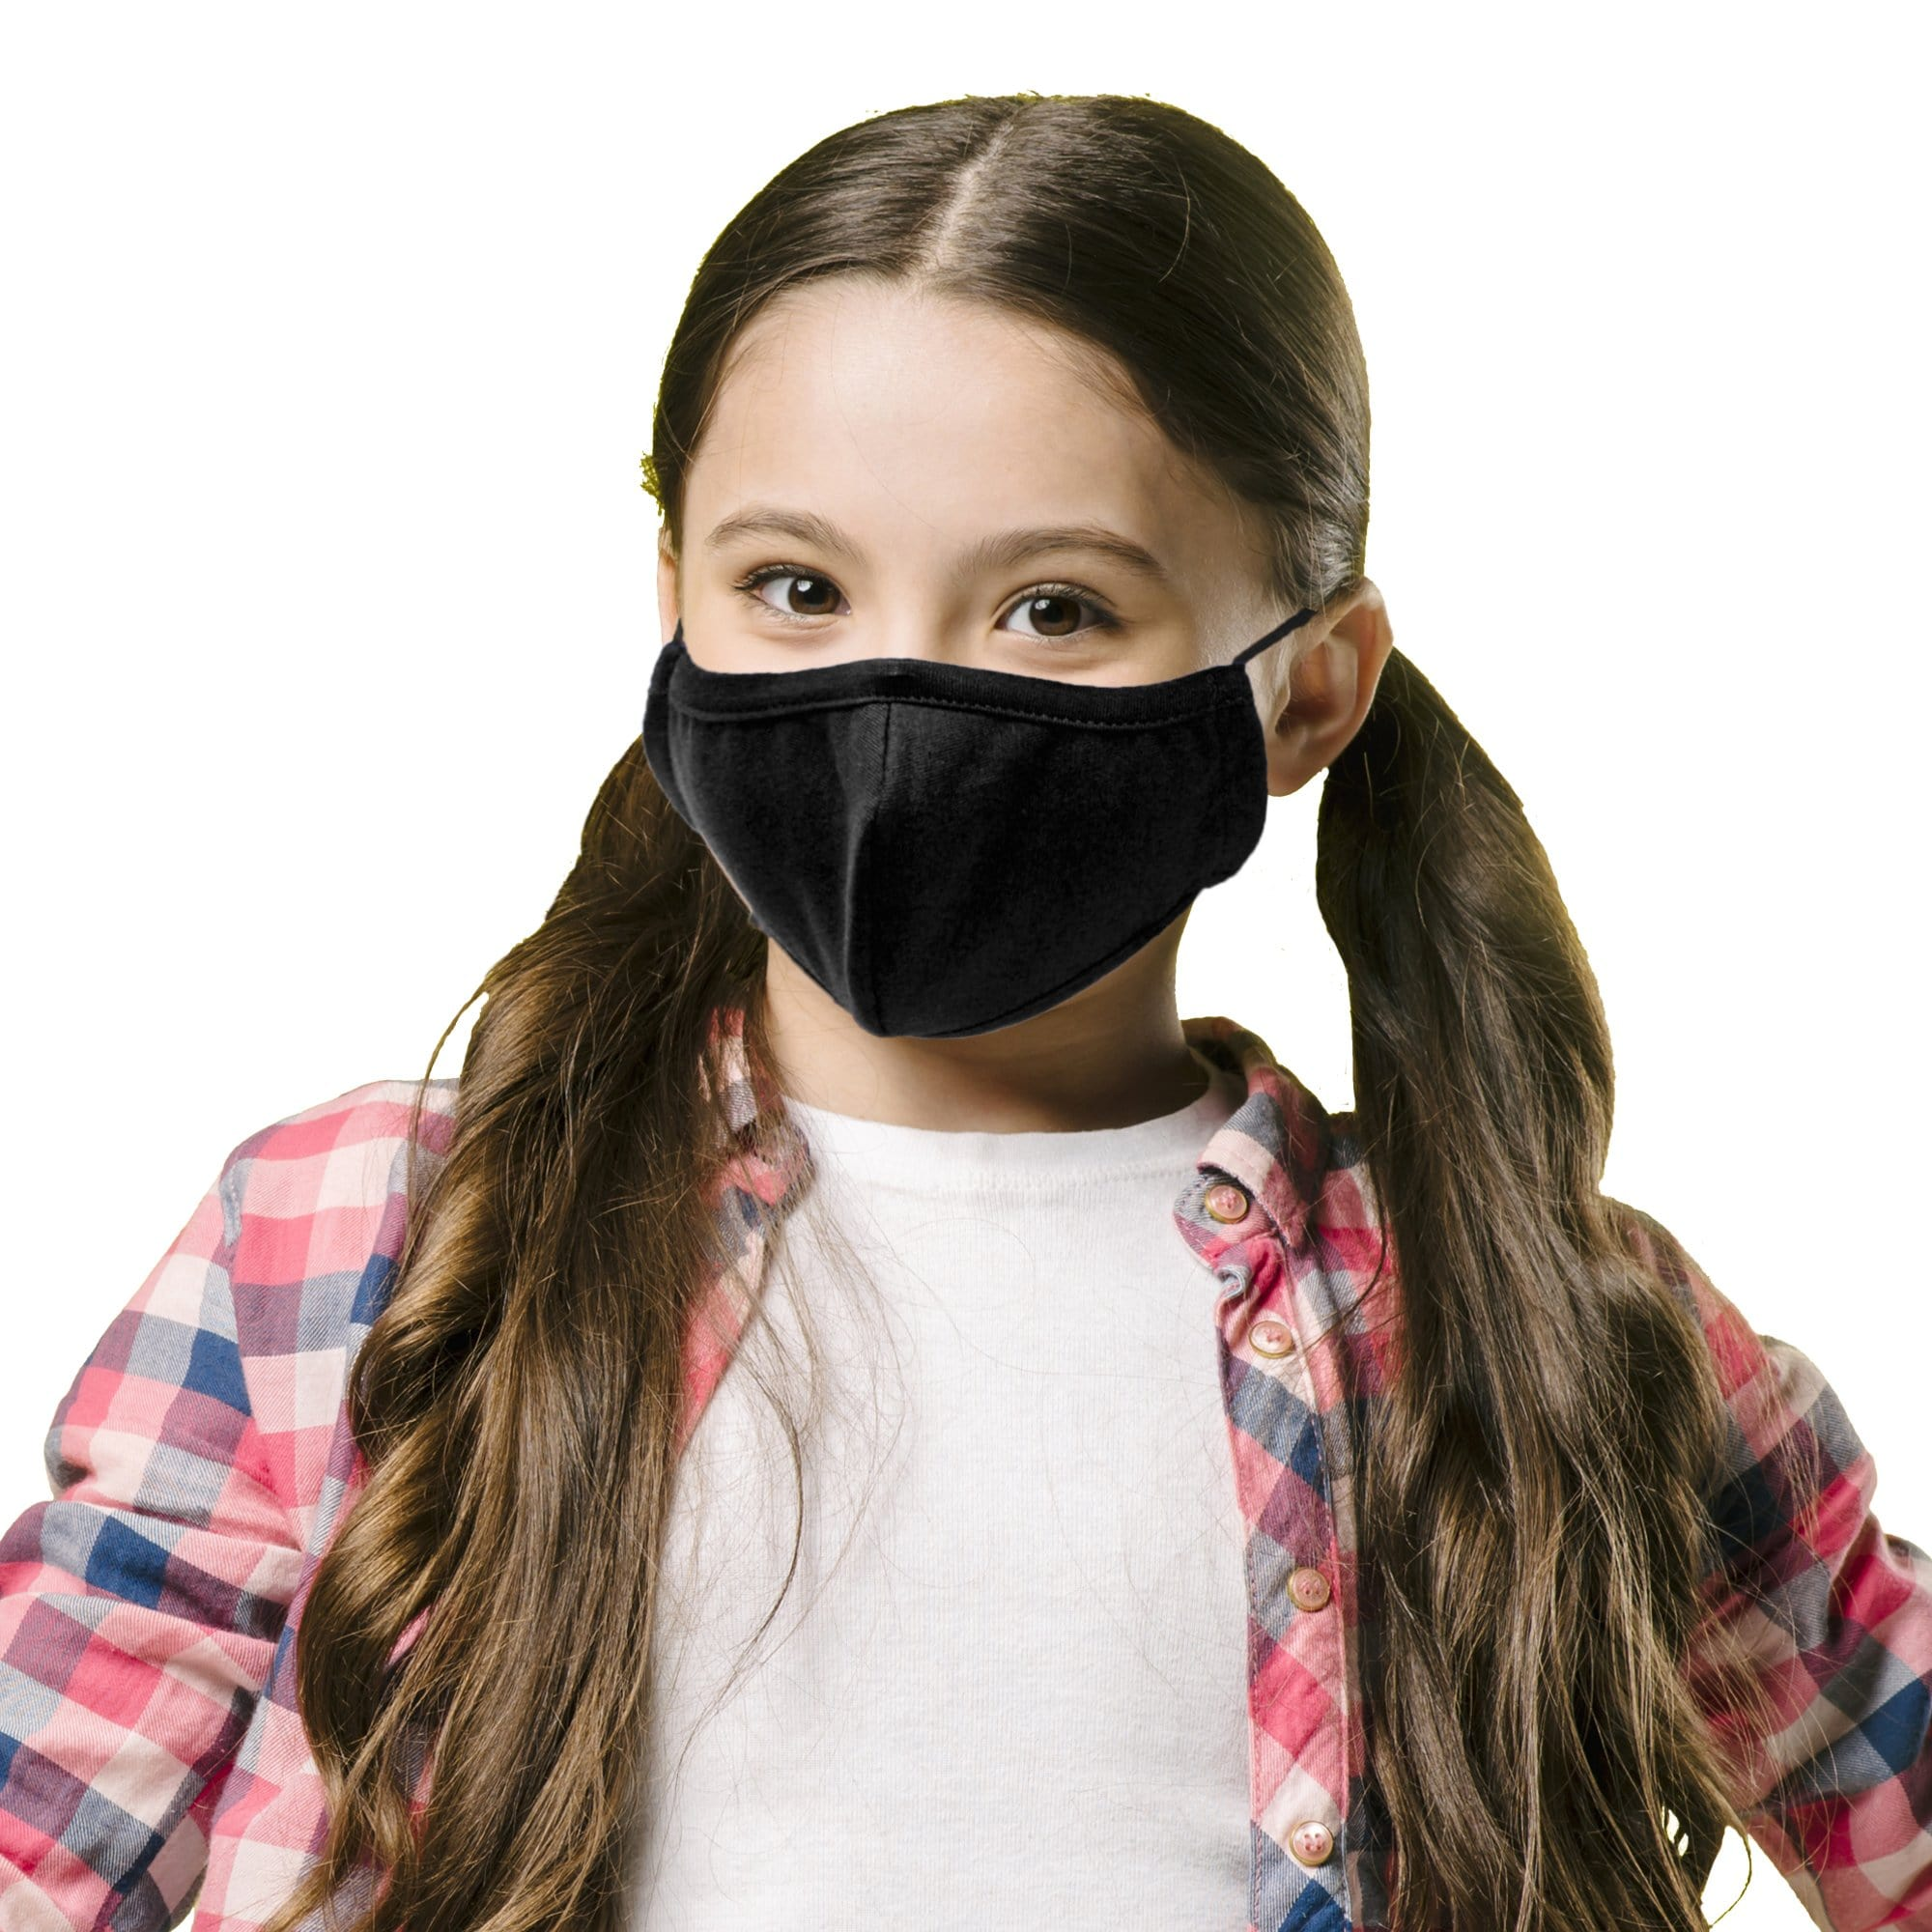 Kids Reusable Face Mask, Black - Ready First Aid